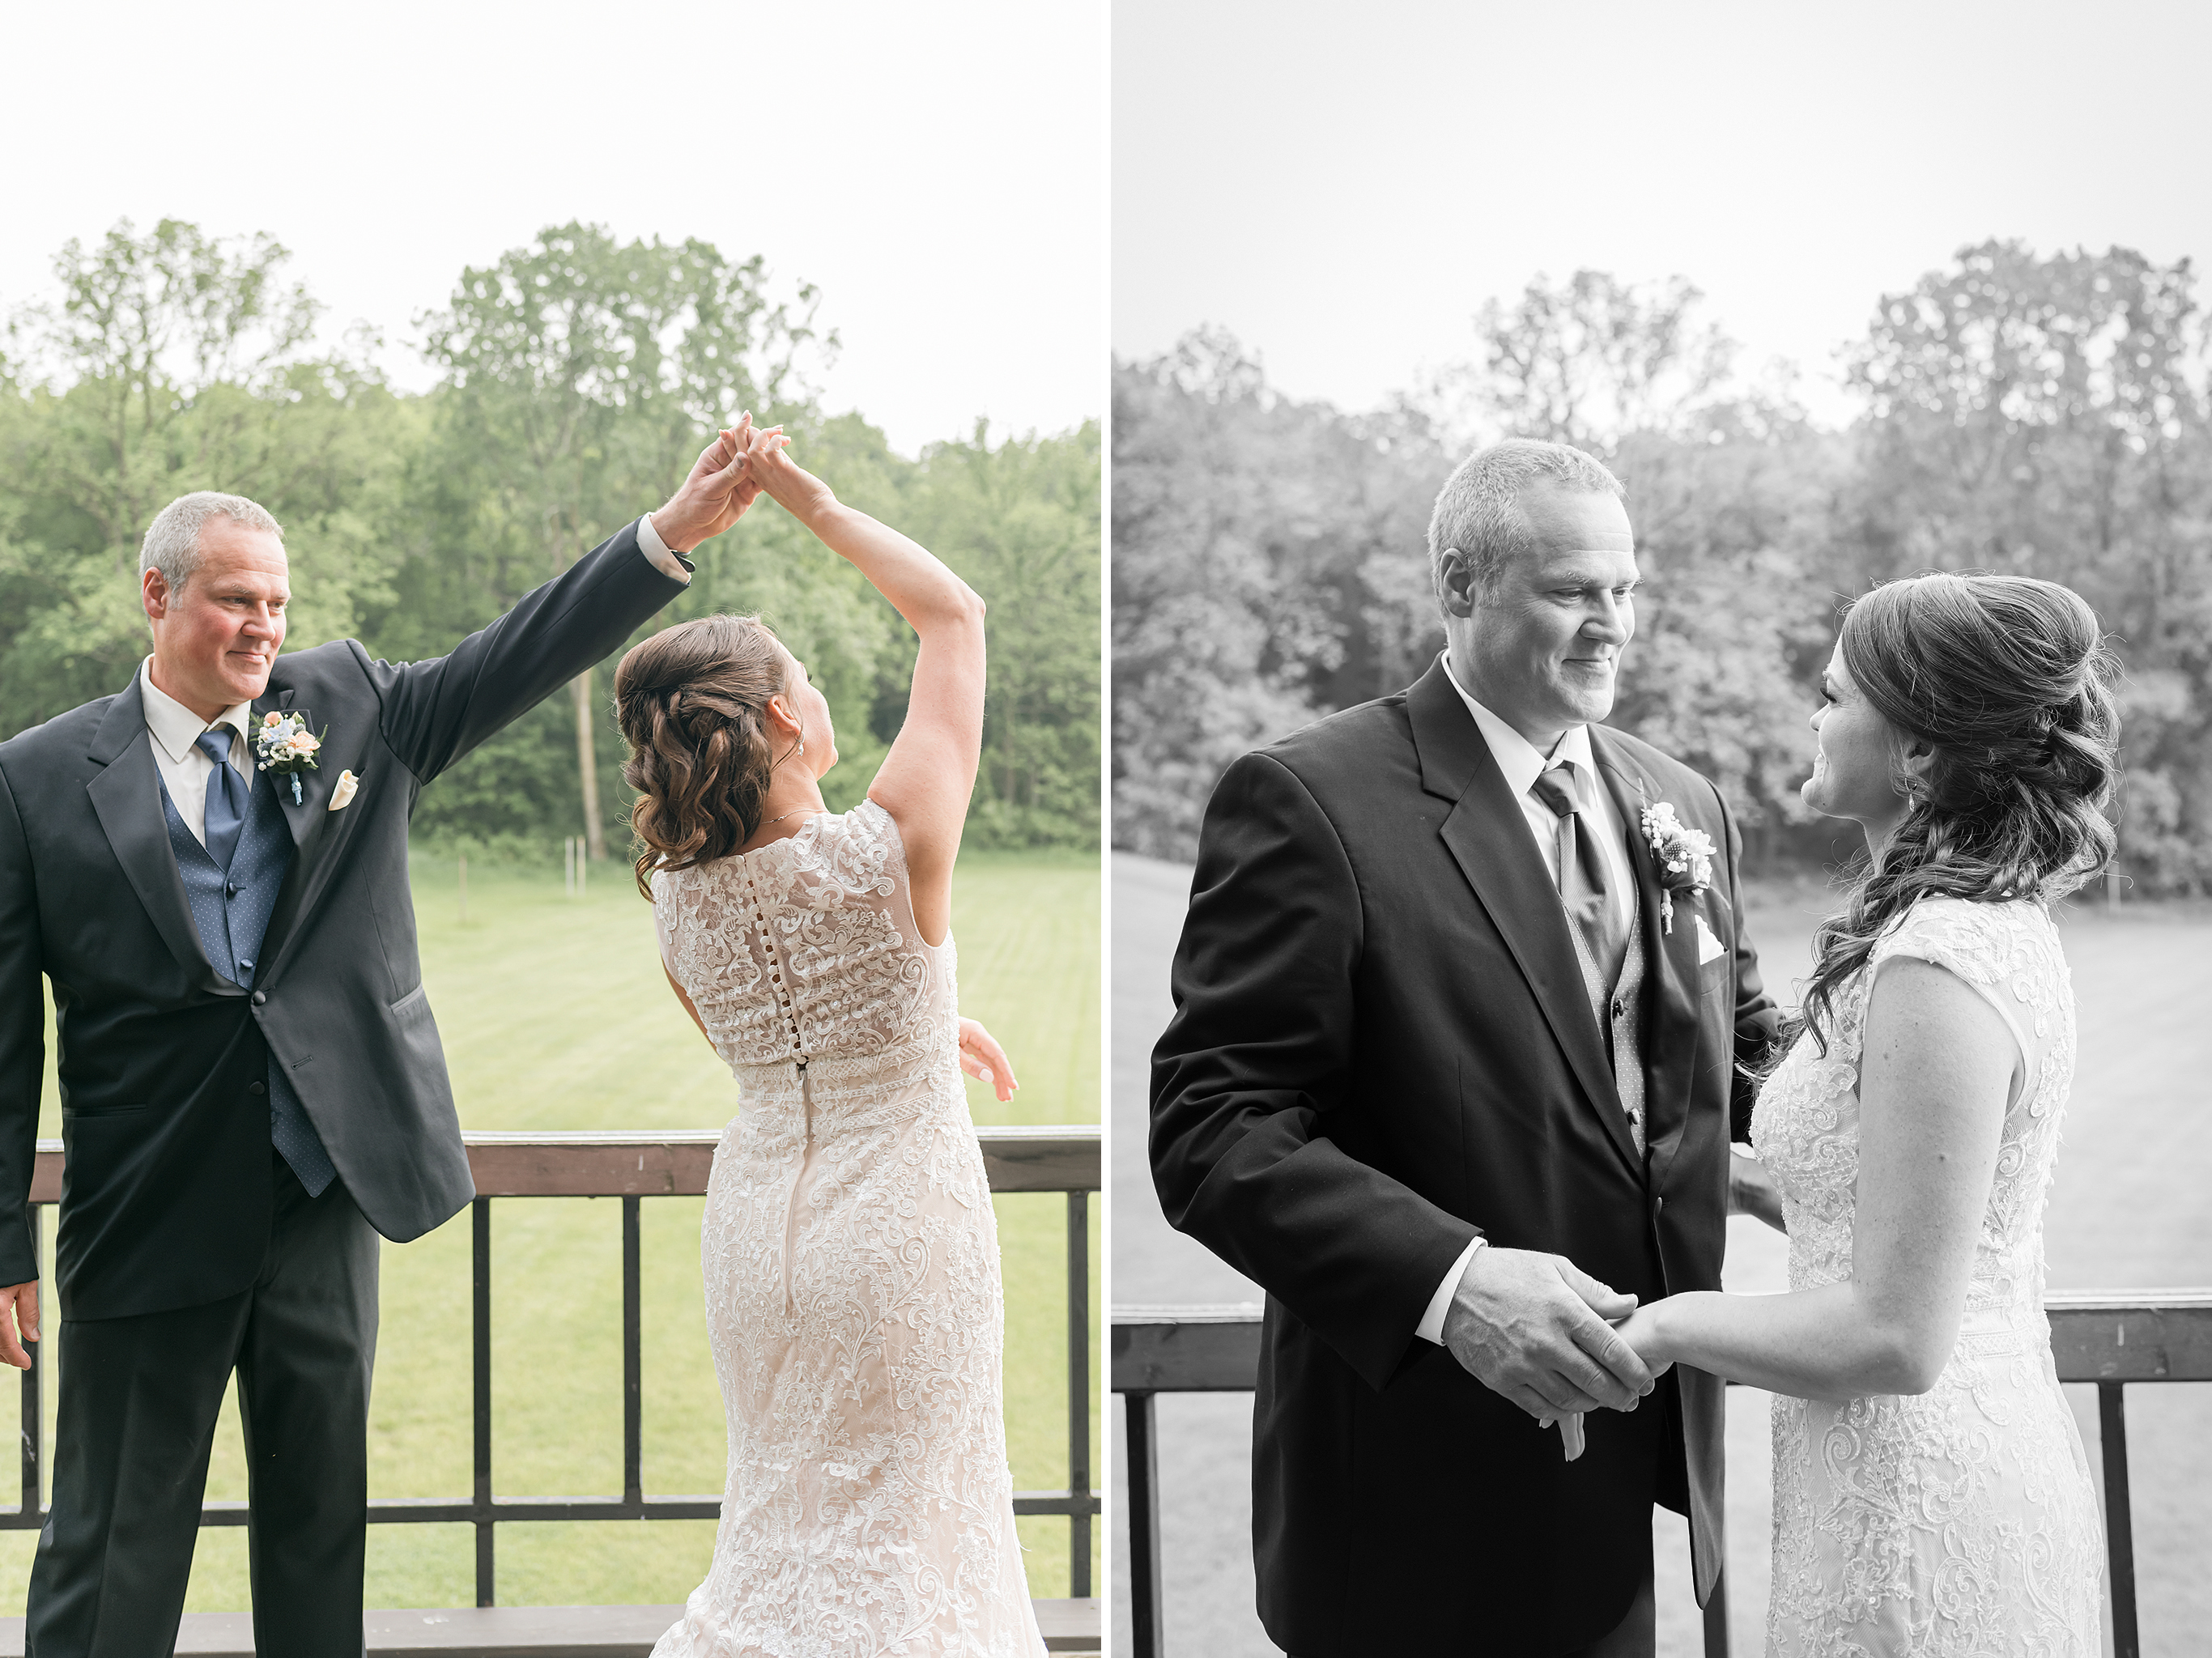 Lindsay-Adkins-Photography-Michigan-Wedding-Photographer-Sauk-Valley-Brooklyn-Michigan17